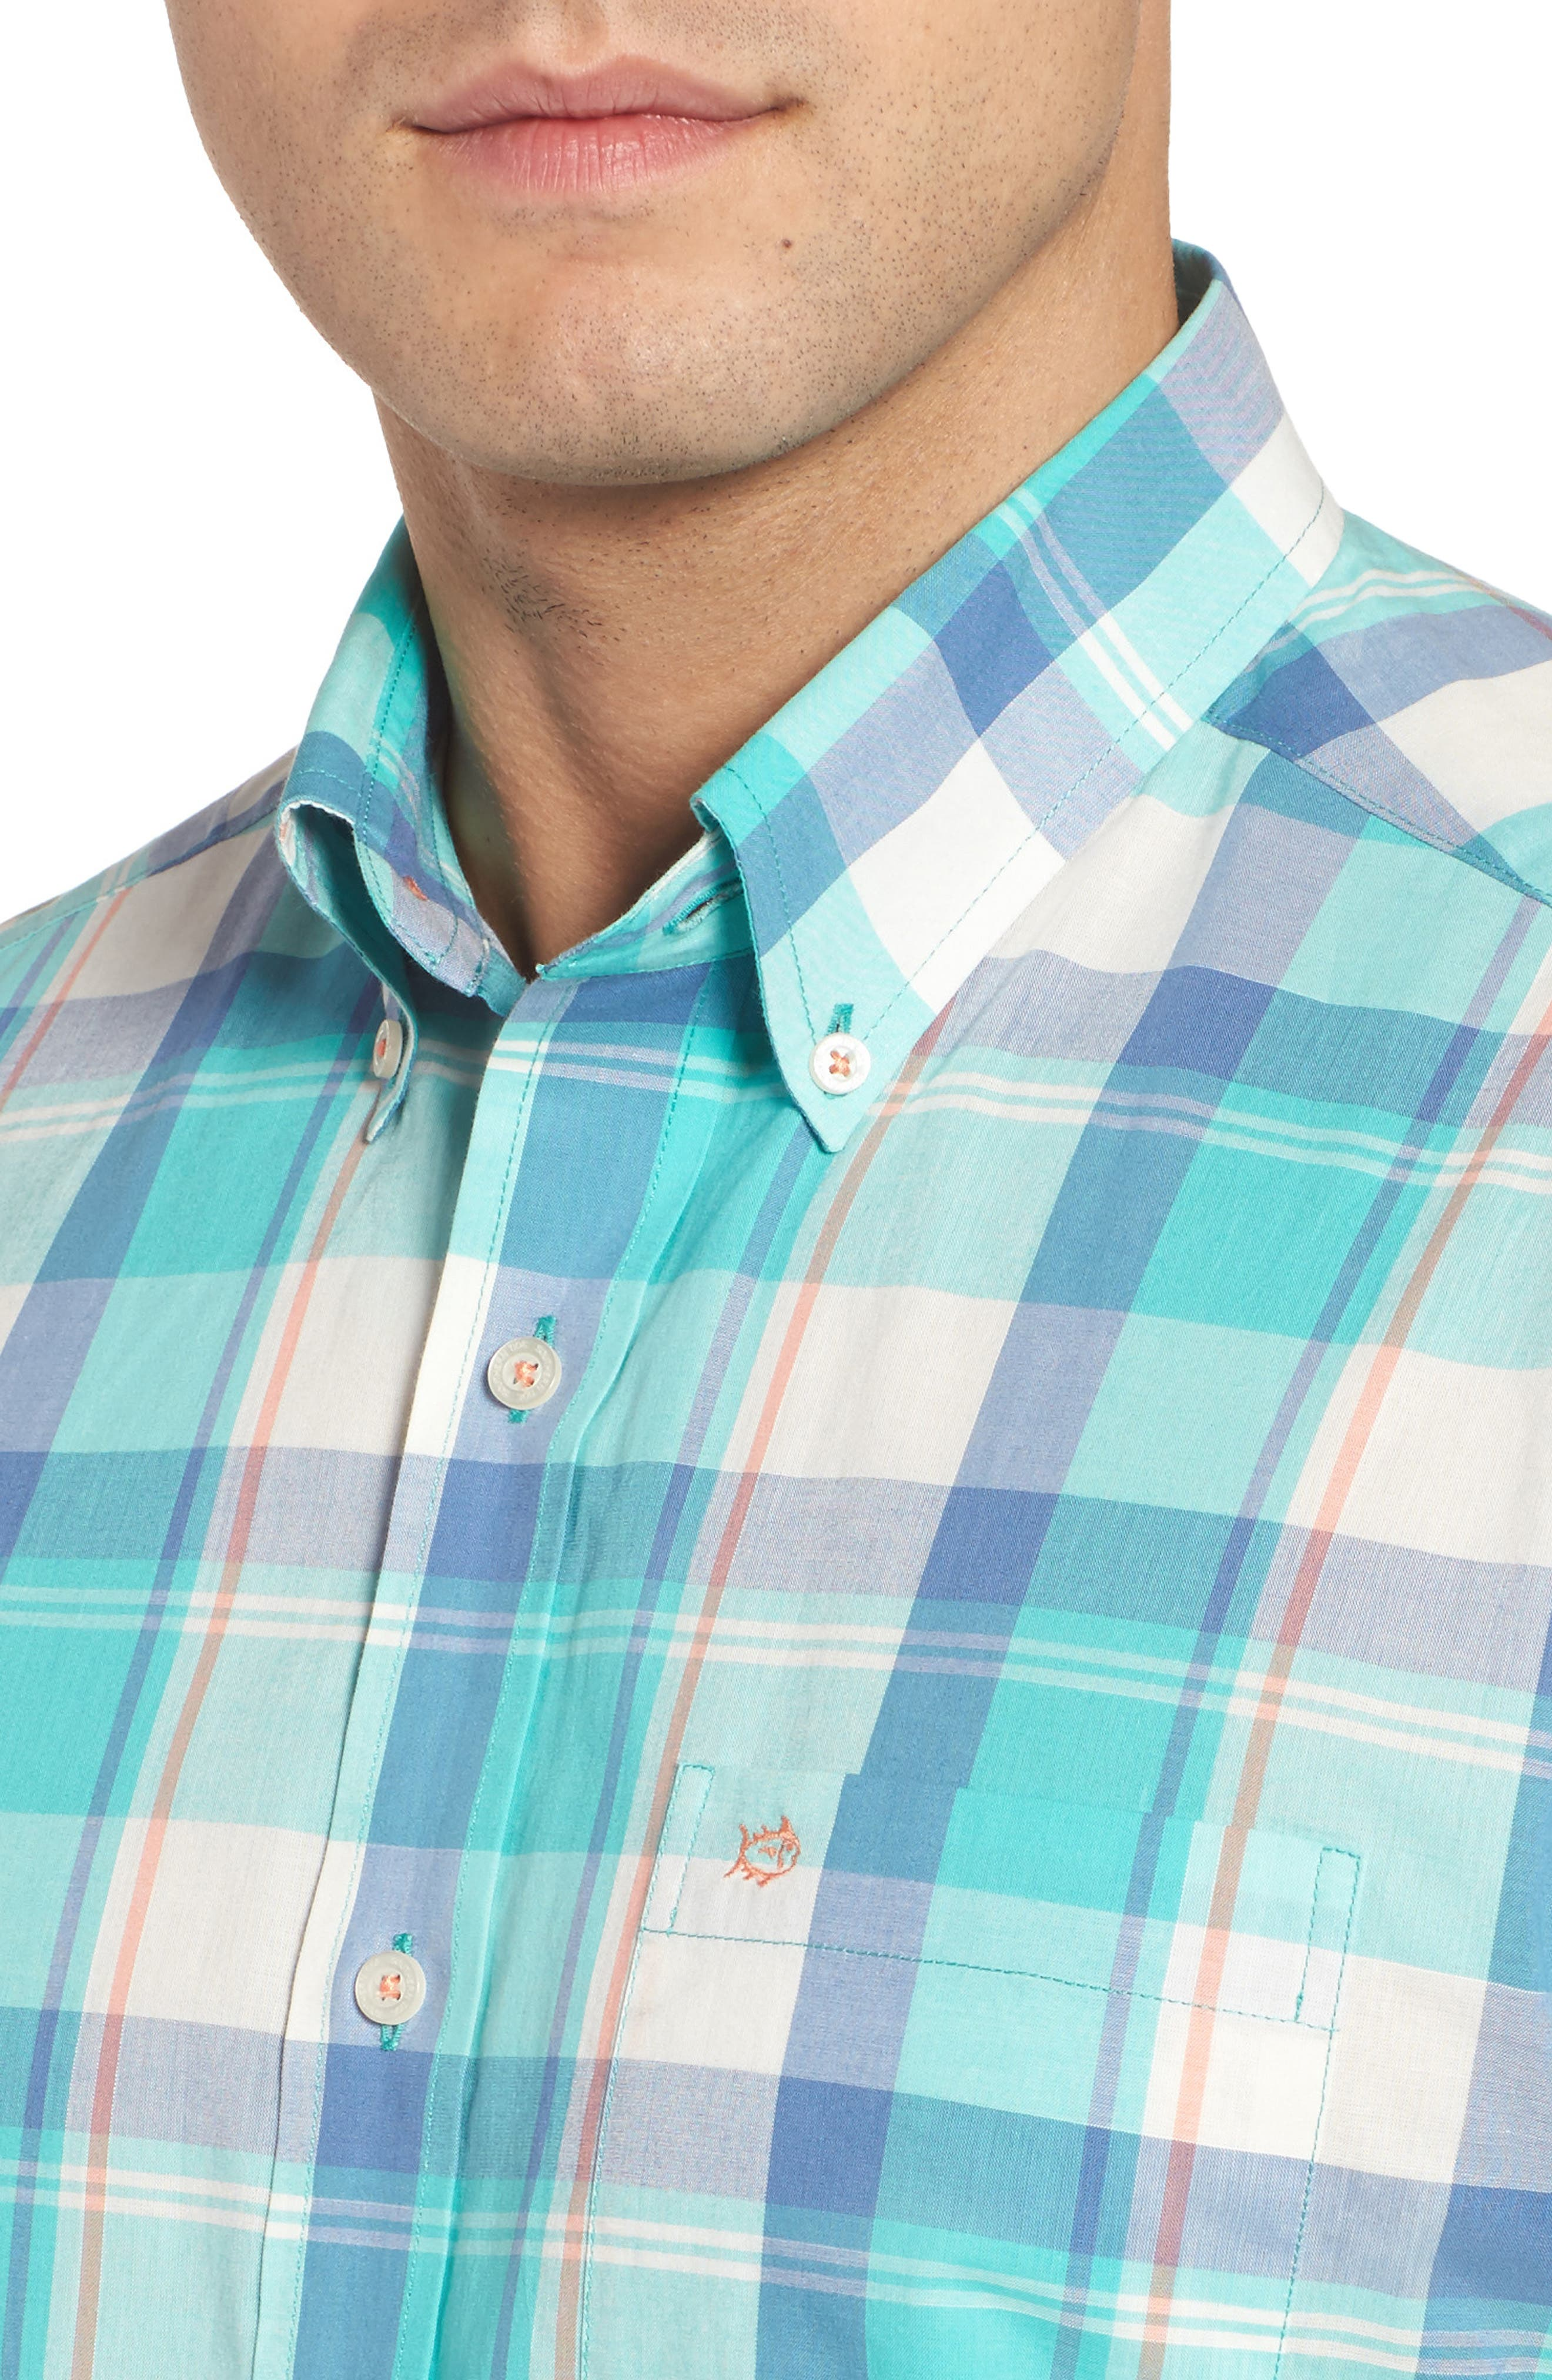 Green Cay Plaid Sport Shirt,                             Alternate thumbnail 4, color,